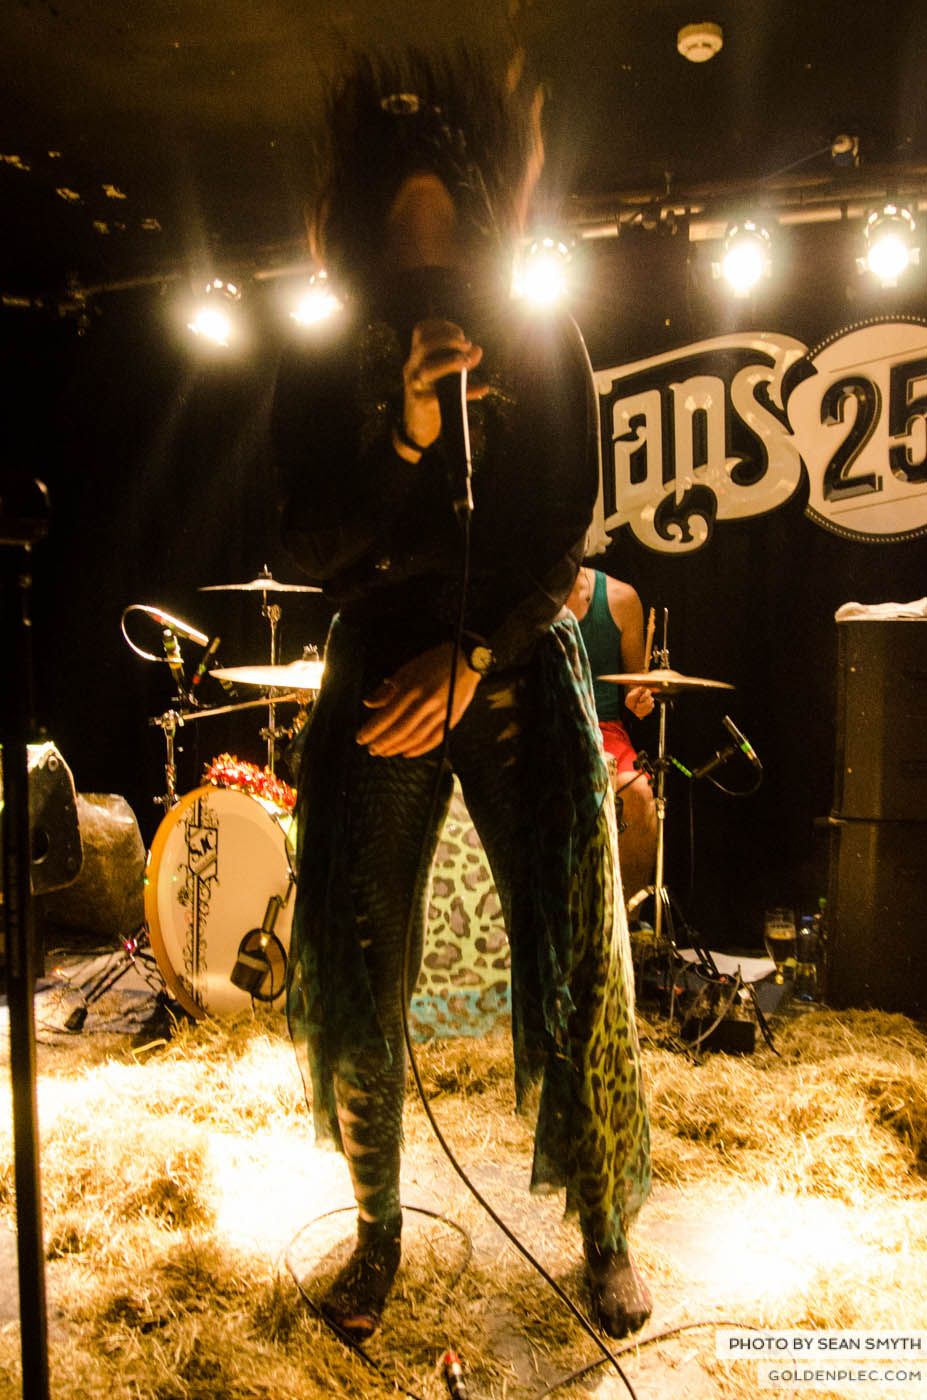 fight-likes-apes-at-whelans-by-sean-smyth-20-12-14-8-of-34